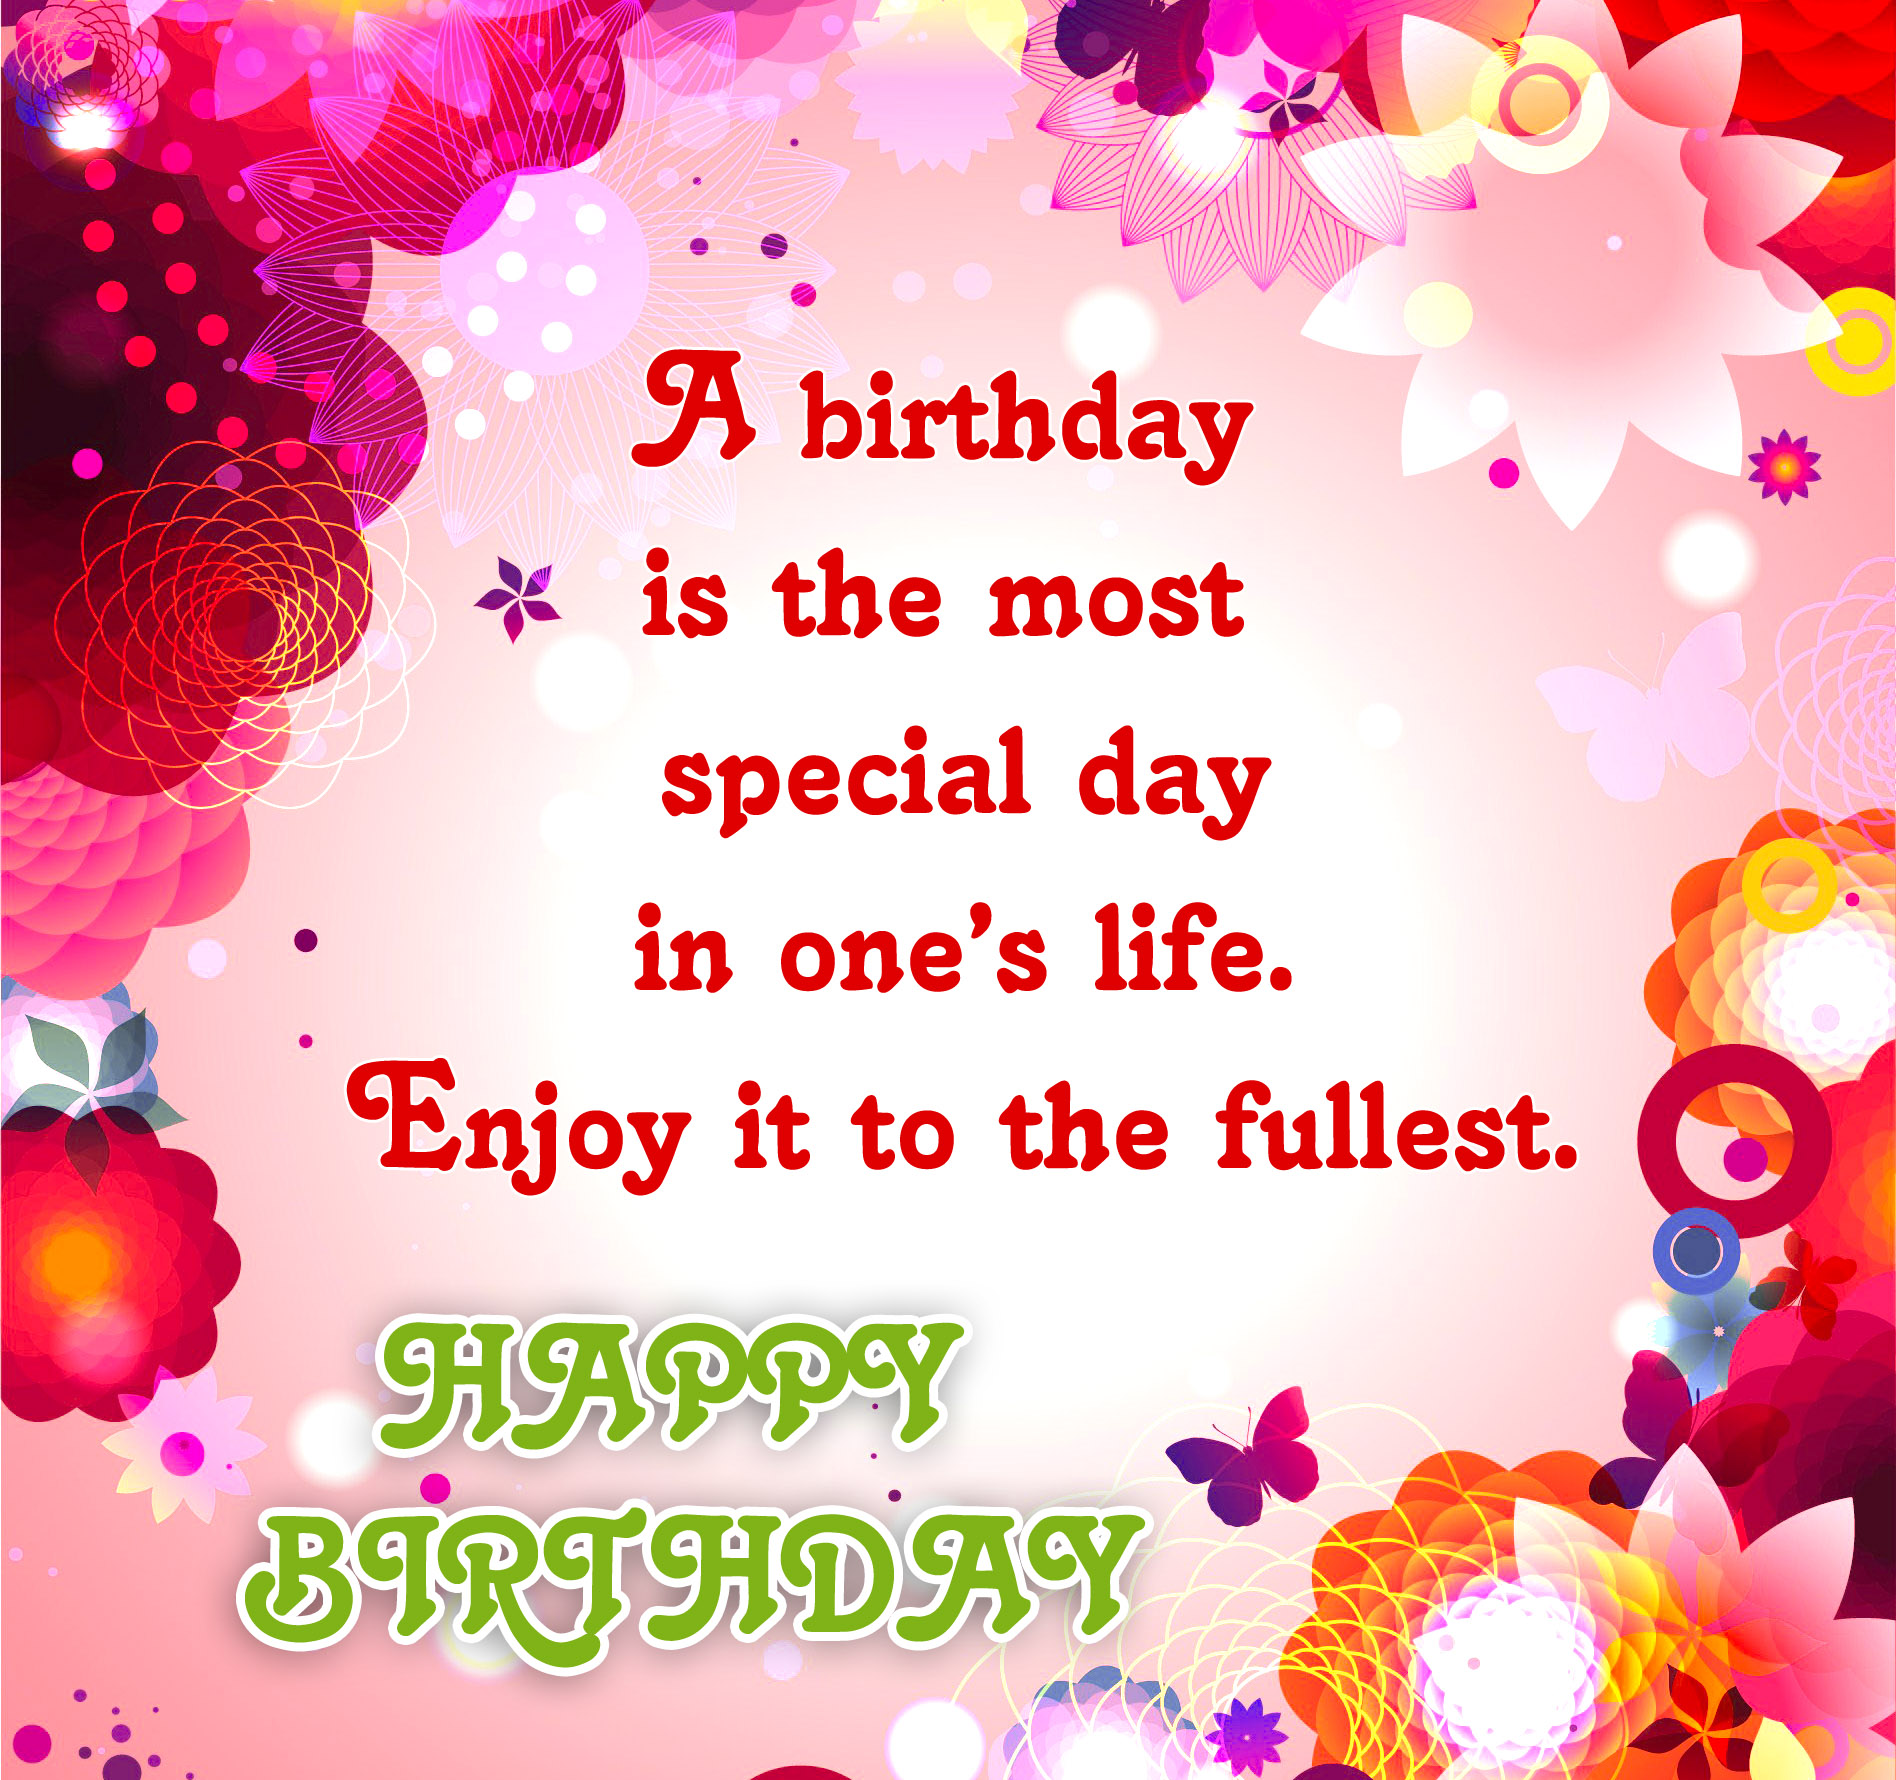 Birthday greeting cards pictures animated gifs happy bday bookmarktalkfo Gallery